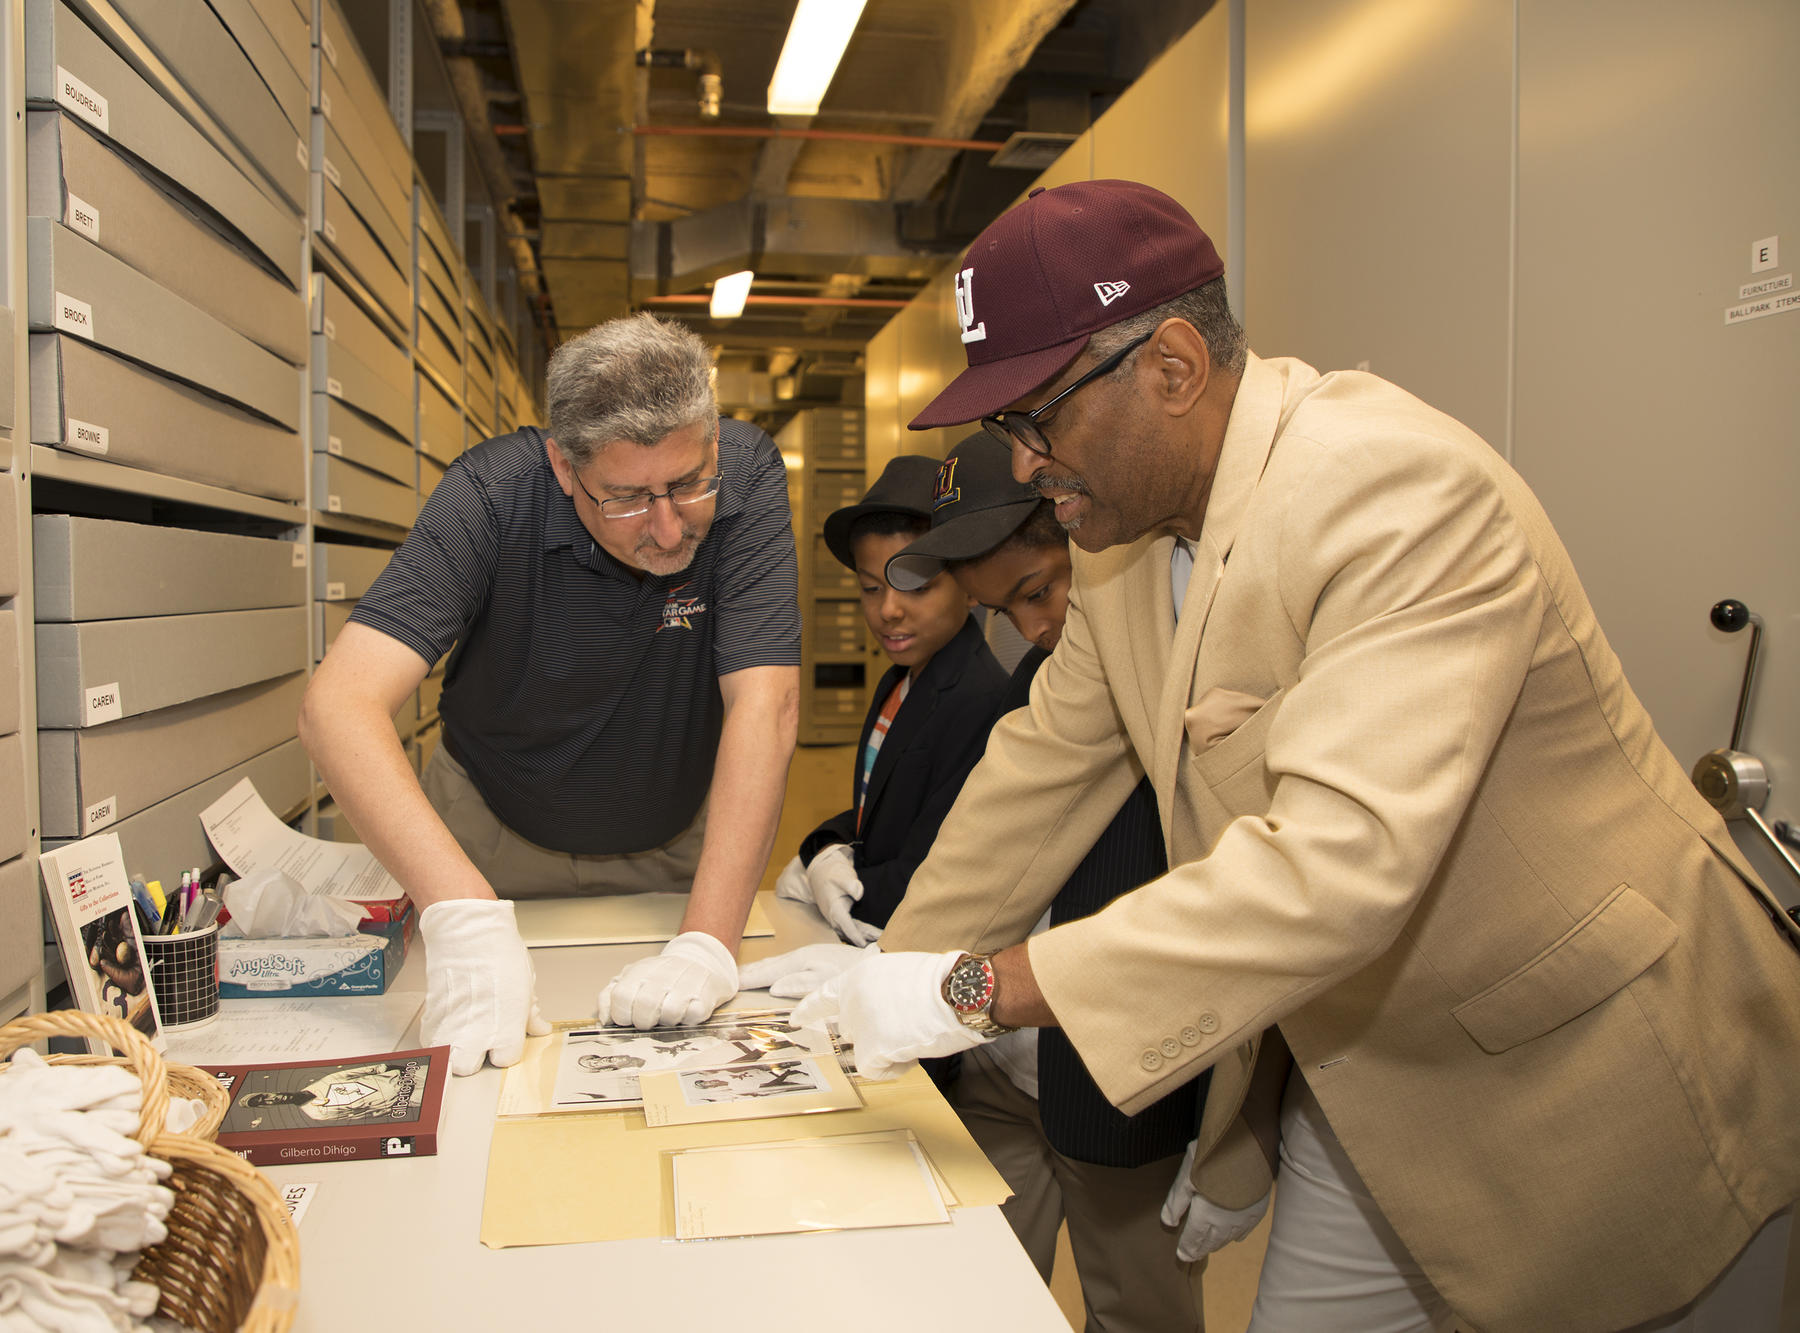 Hall of Fame vice president for exhibitions and collections Erik Strohl shows Gilberto Dihigo, son of Hall of Famer Martin Dihigo, artifacts from the Museum's collection. Gilberto's sons Gilbert and Gregory look on as well. (Milo Stewart Jr./National Baseball Hall of Fame and Museum)